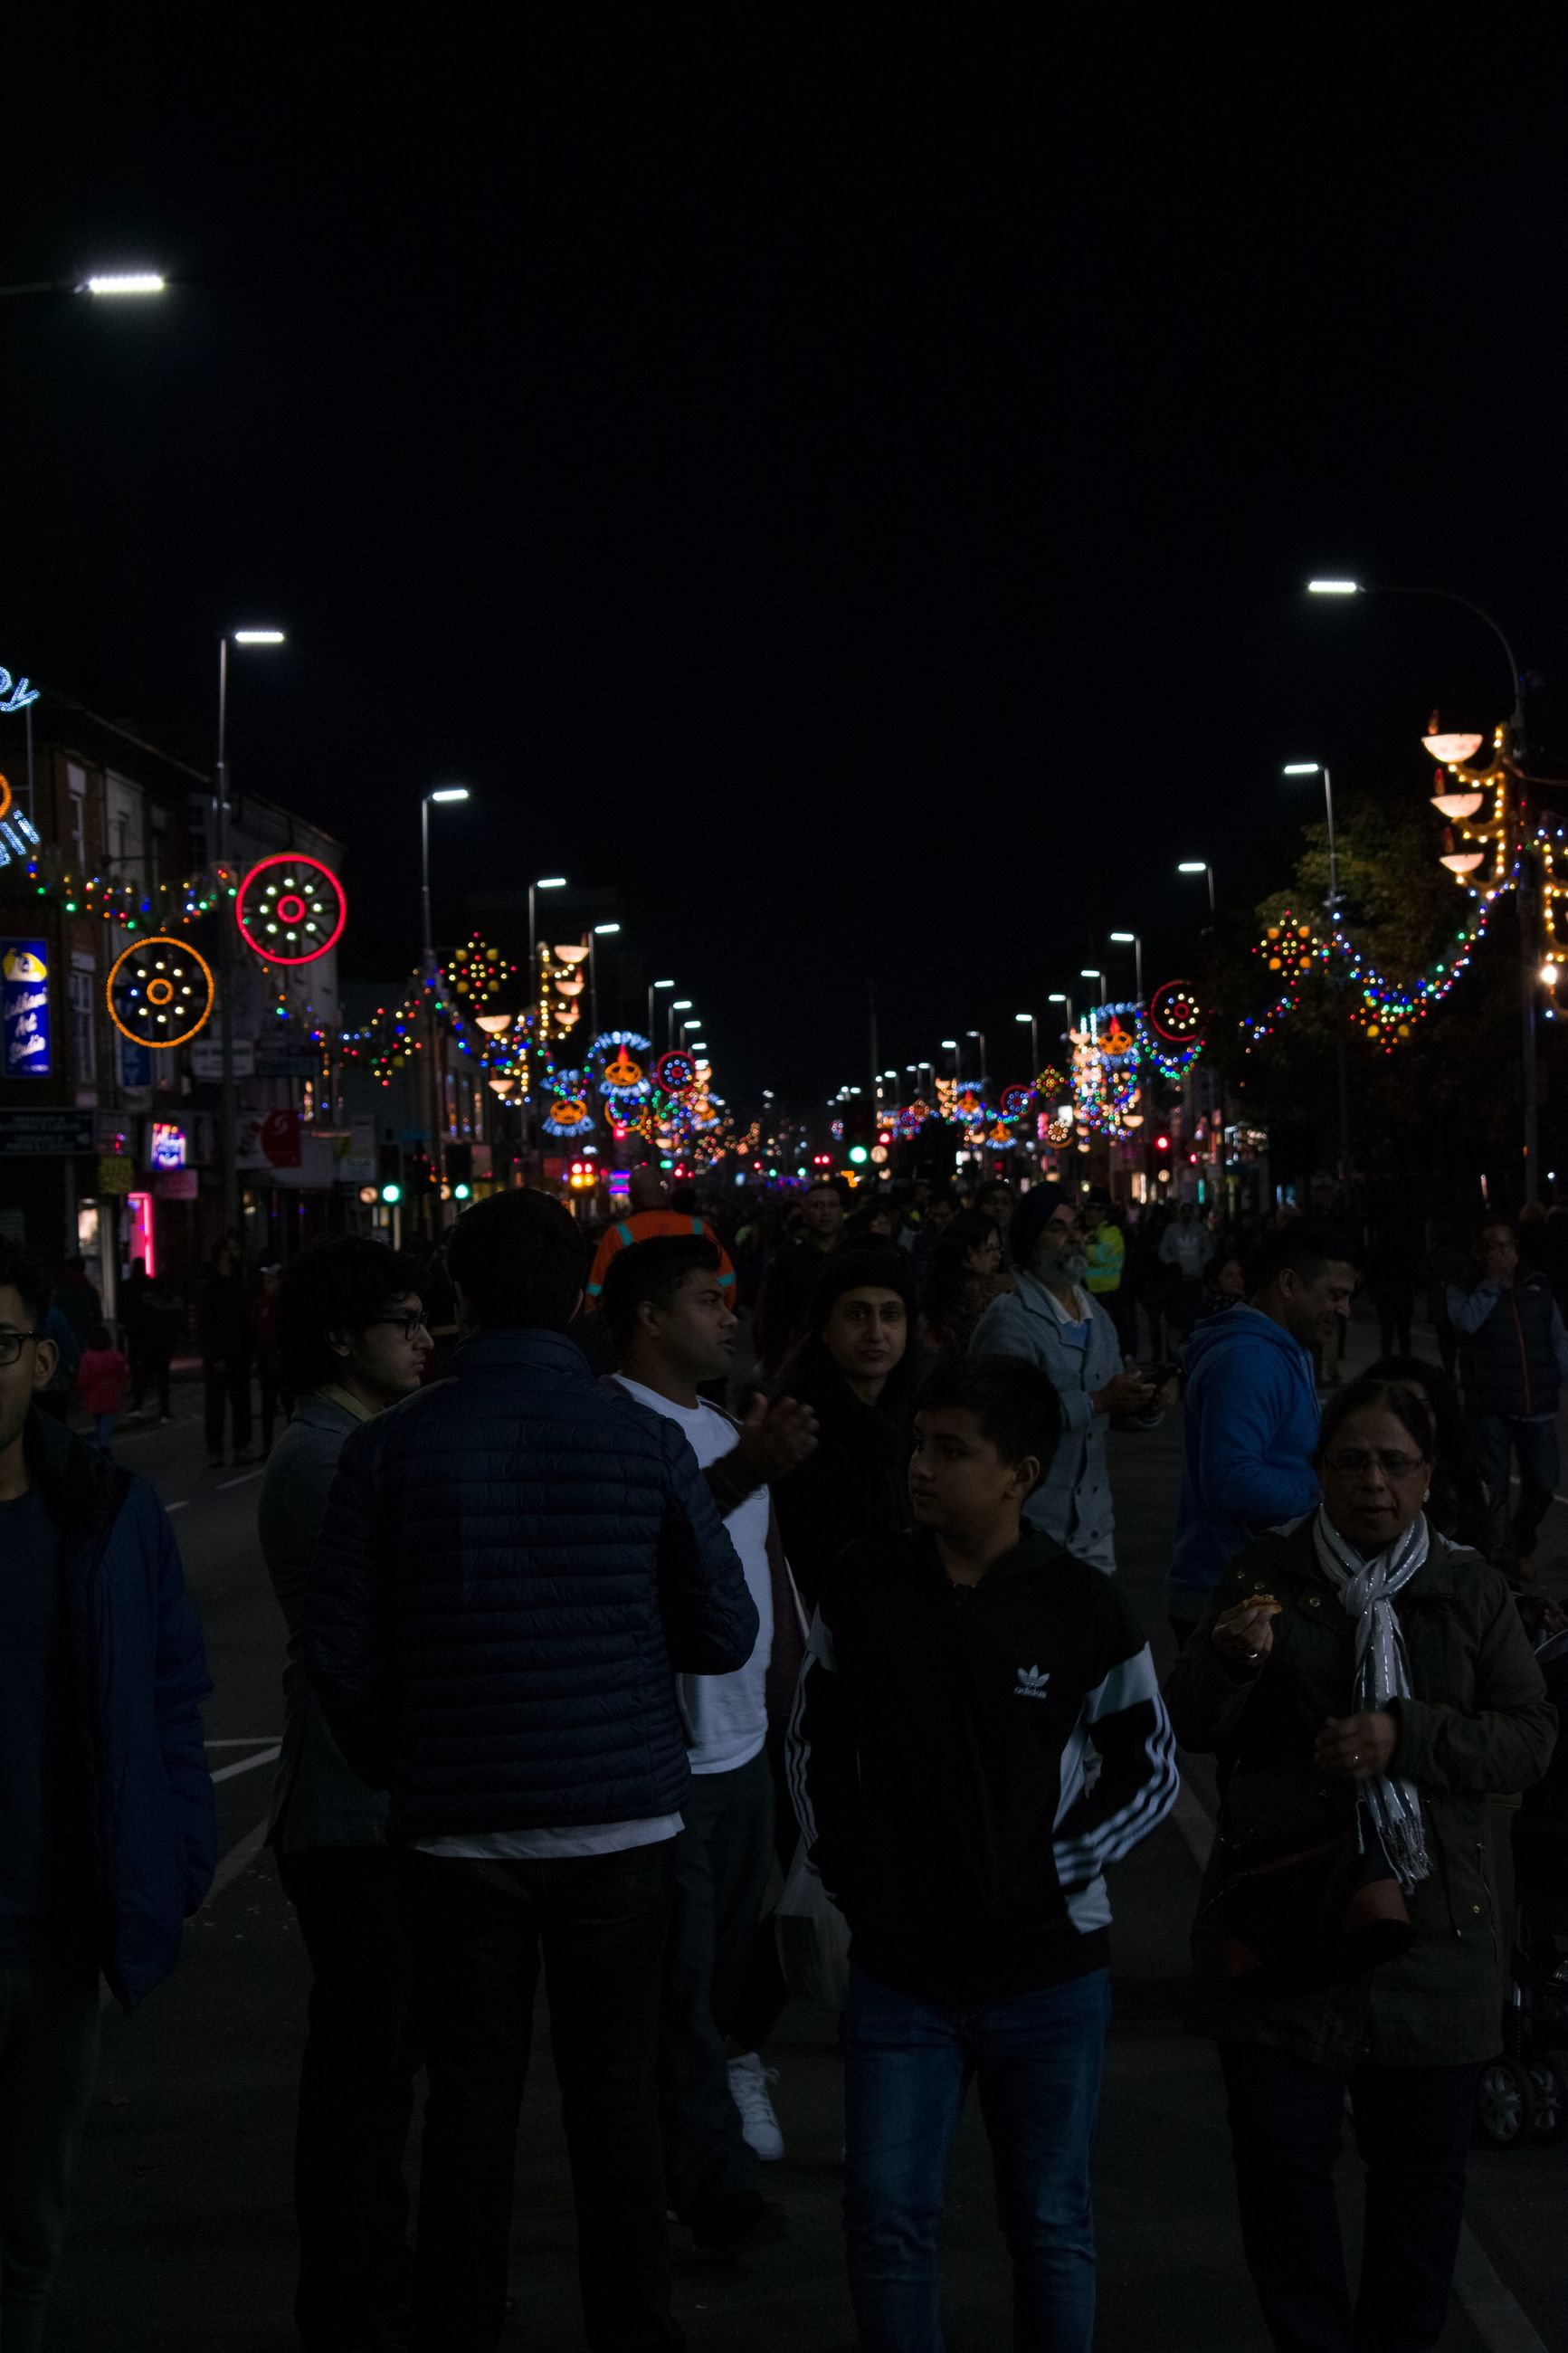 night, large group of people, illuminated, celebration, city, outdoors, men, people, real people, sky, adults only, crowd, adult